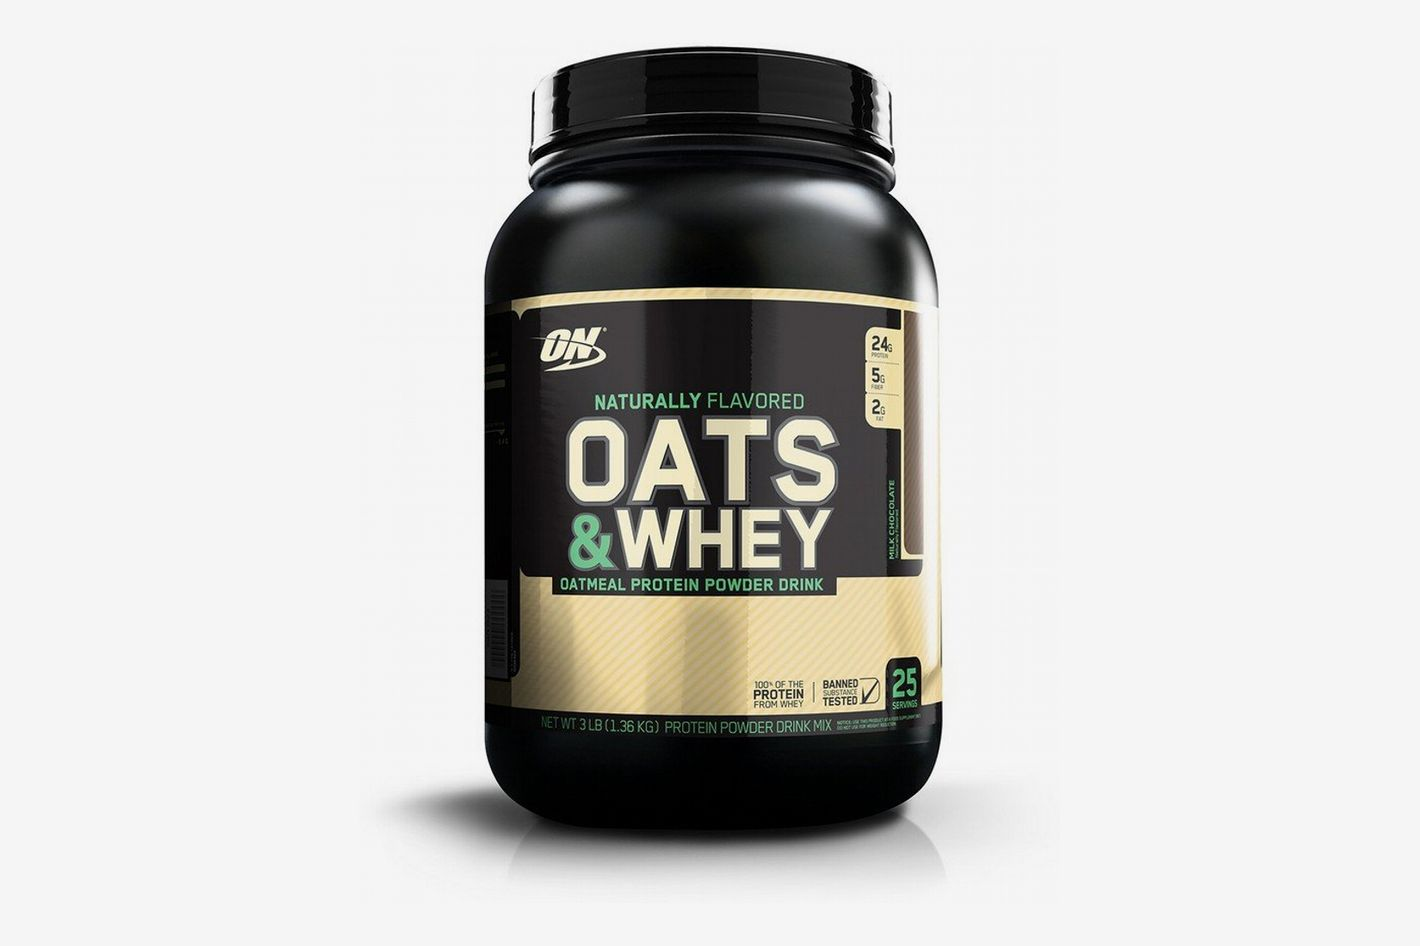 OPTIMUM NUTRITION Oats and Whey Protein Powder, Naturally Flavored Milk Chocolate